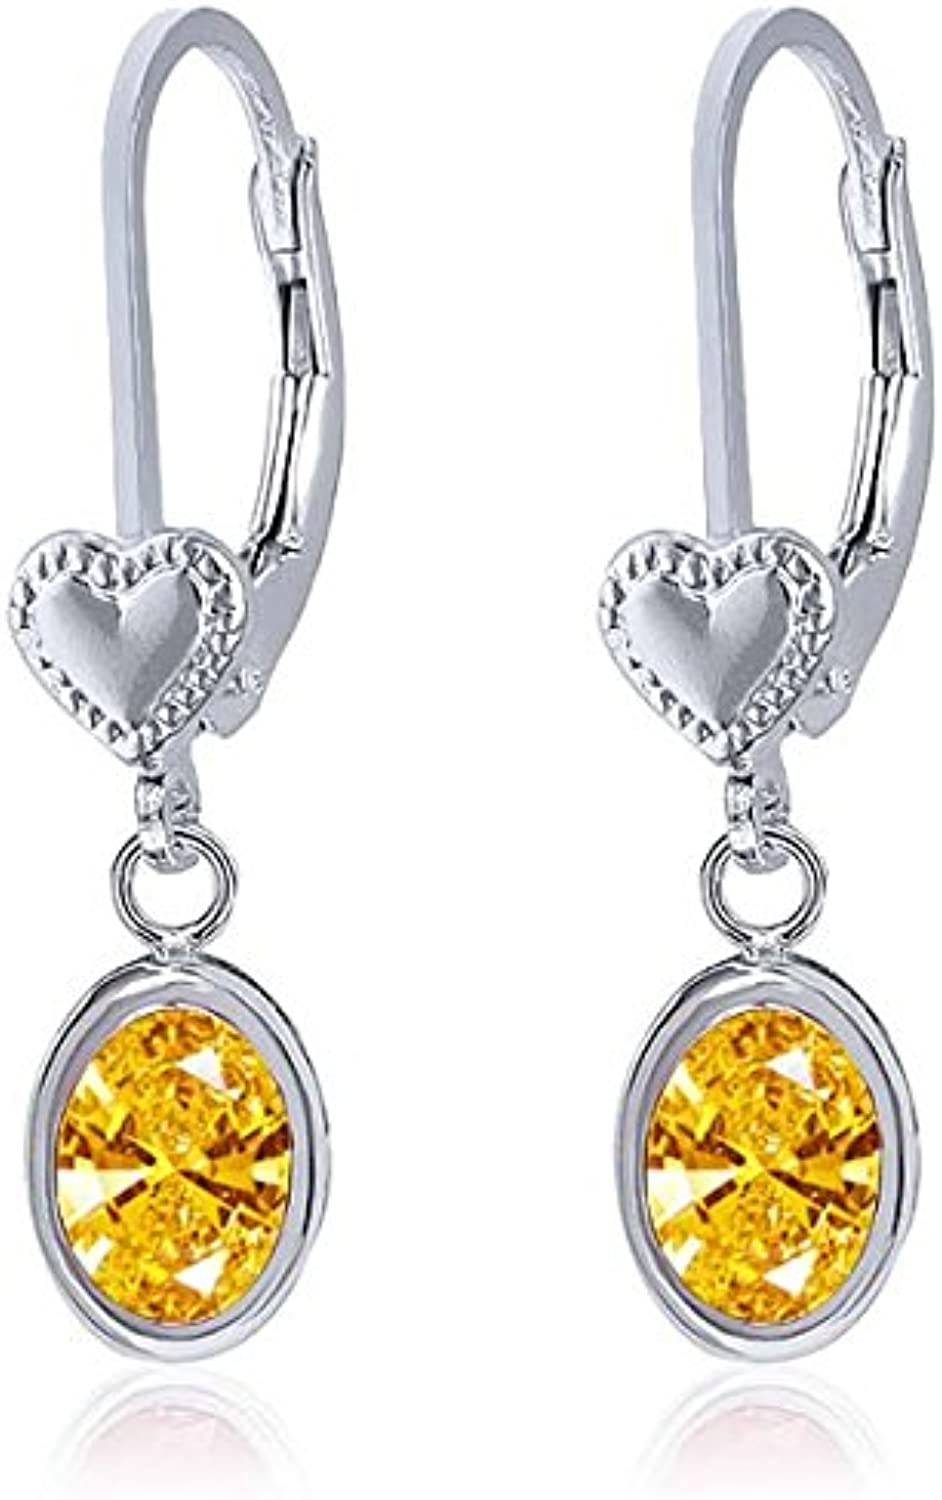 Carlo white golden Yellow 925 Sterling Silver Earrings Made With Swarovski Zirconia